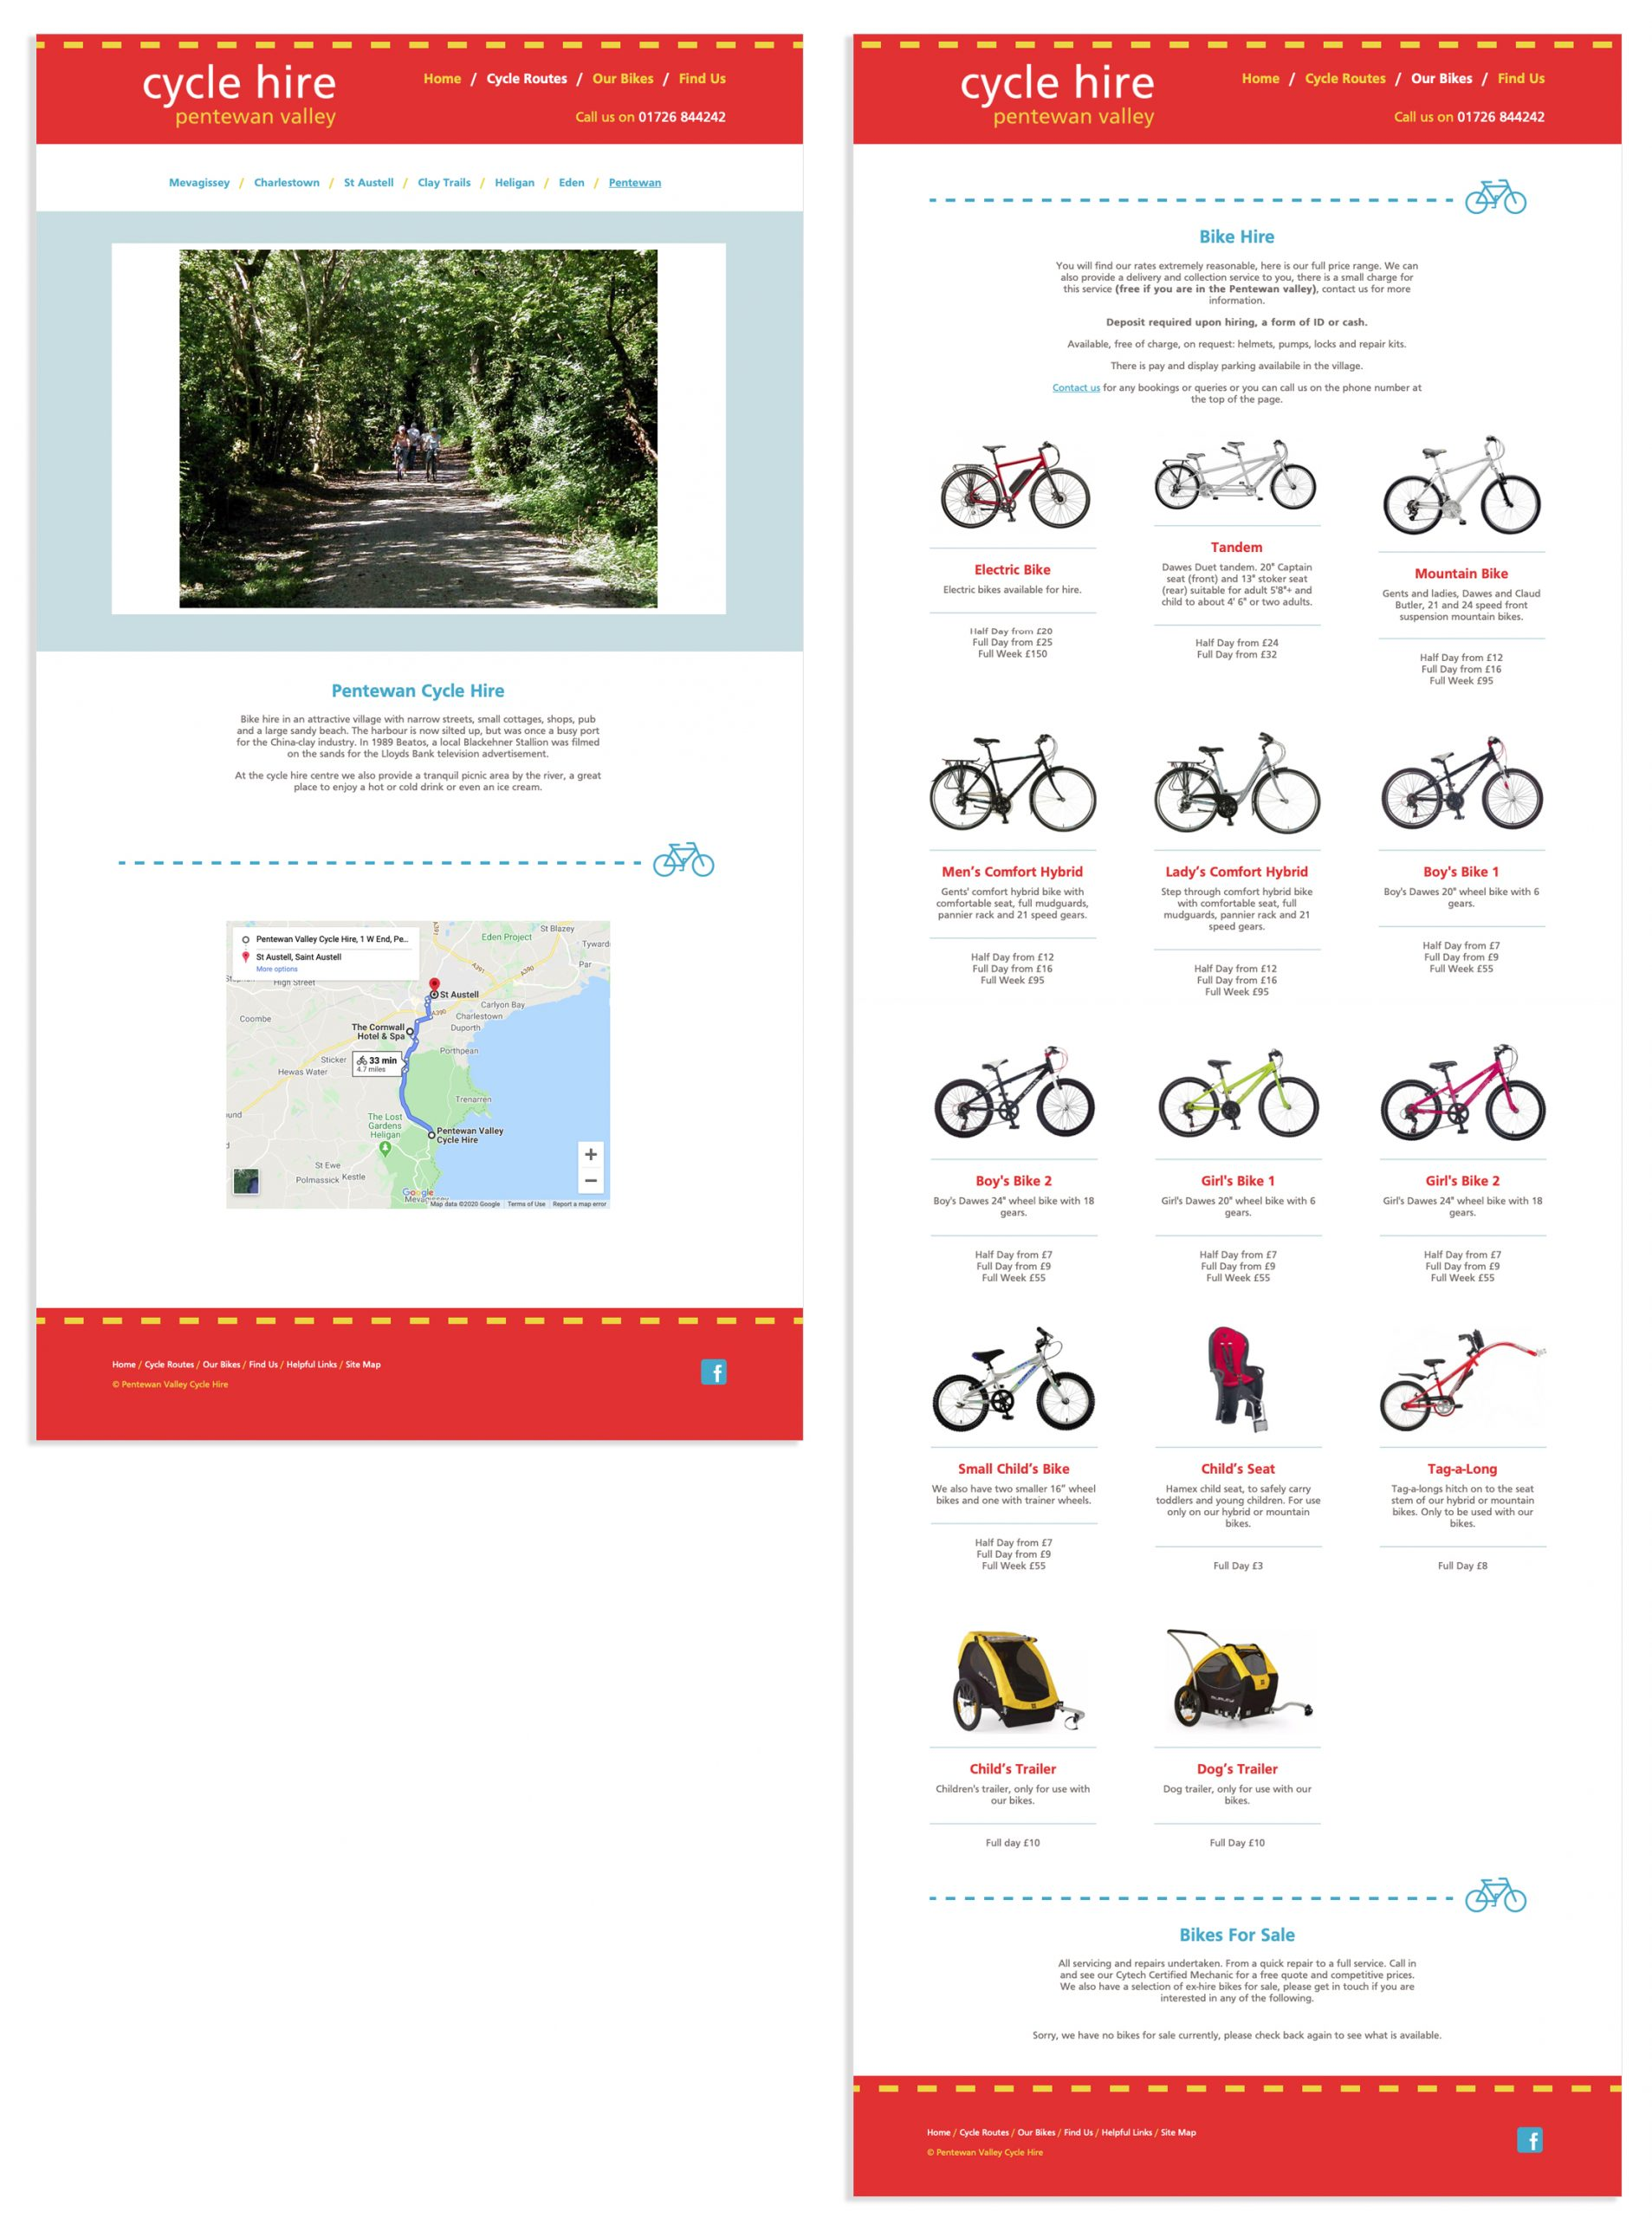 Pentewan Valley Cycle Hire bikes and routes